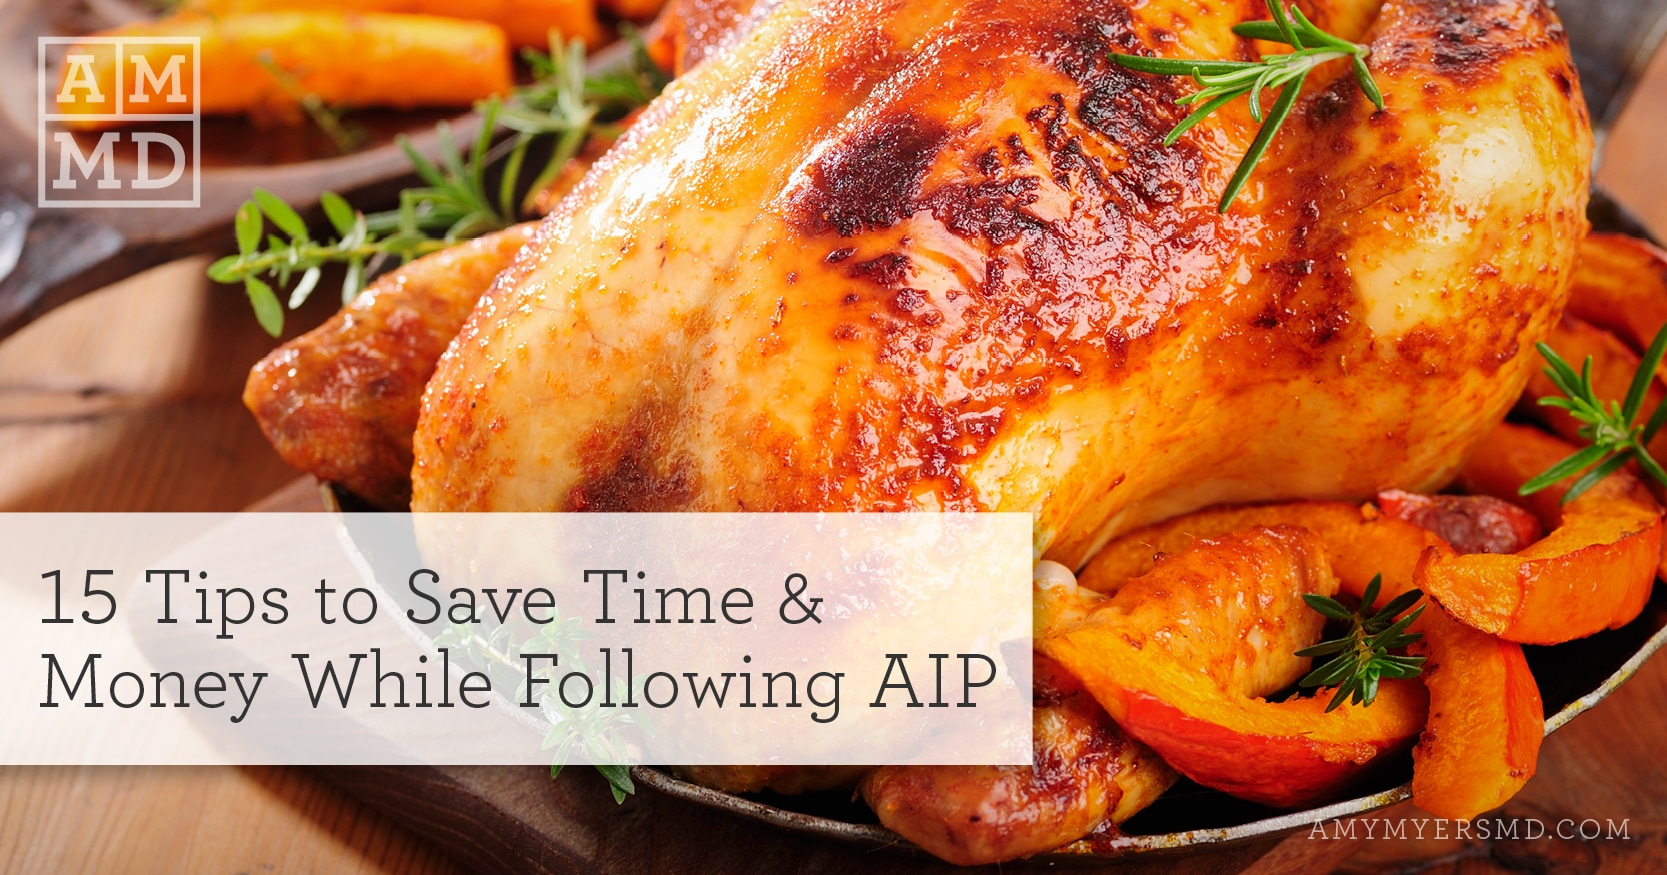 15 Tips to Save Time & Money While Following AIP - A Cooked Chicken - Featured Image - Amy Myers MD